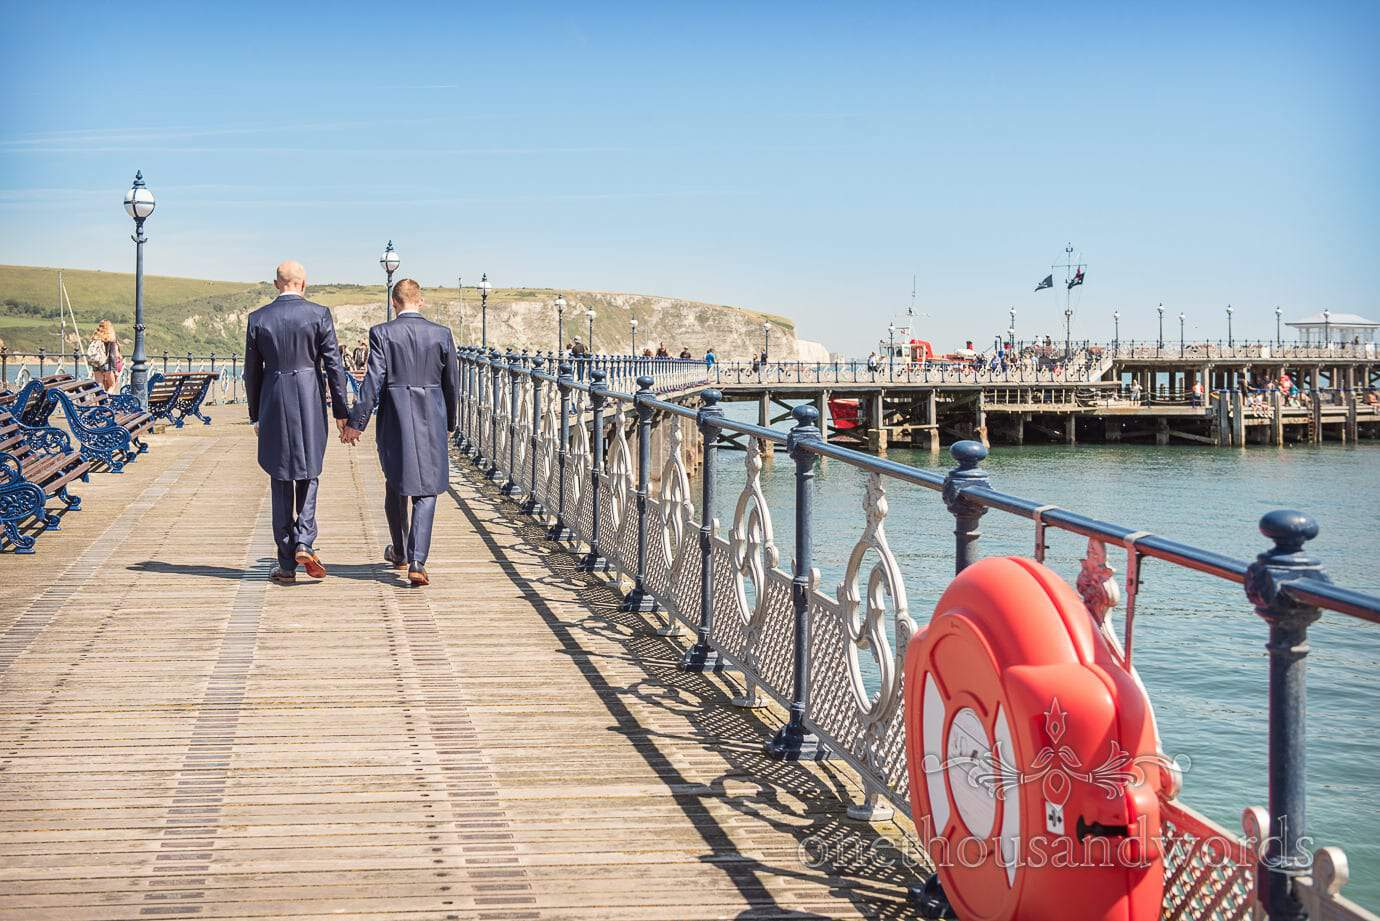 Groom's in blue wedding suits walk hand in hand along Swanage Victorian pier